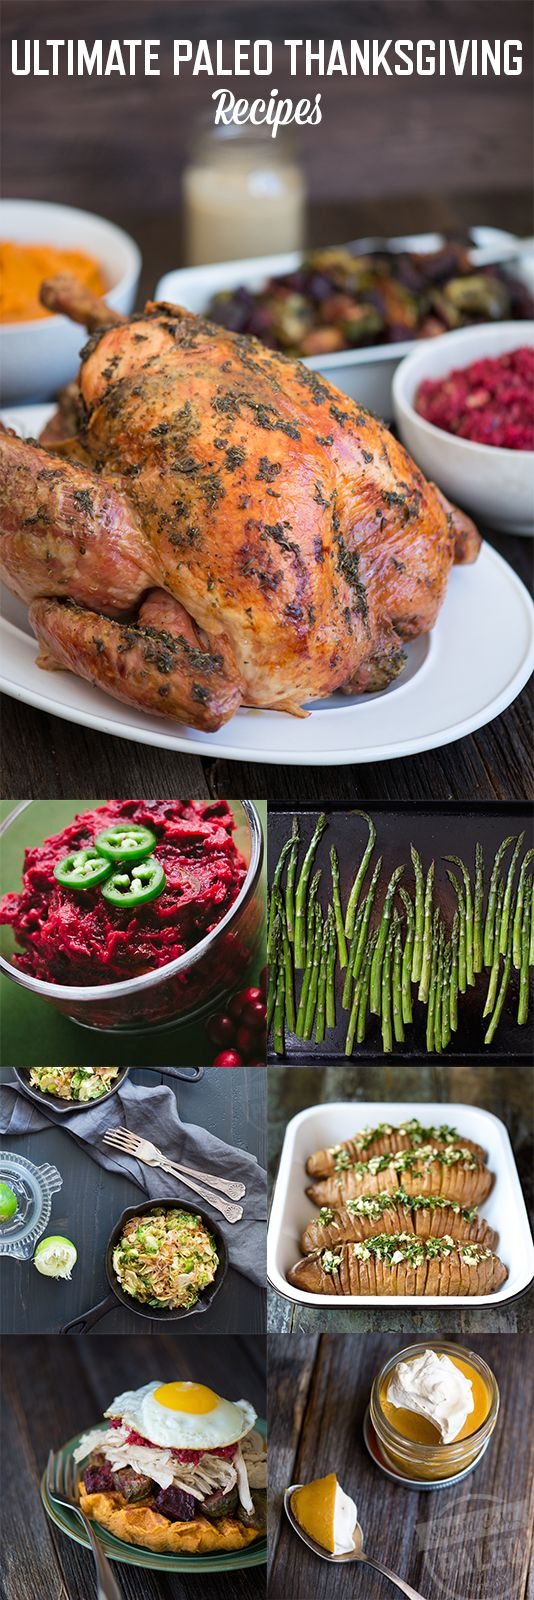 Ultimate Paleo Thanksgiving Recipes | stupideasypaleo.com